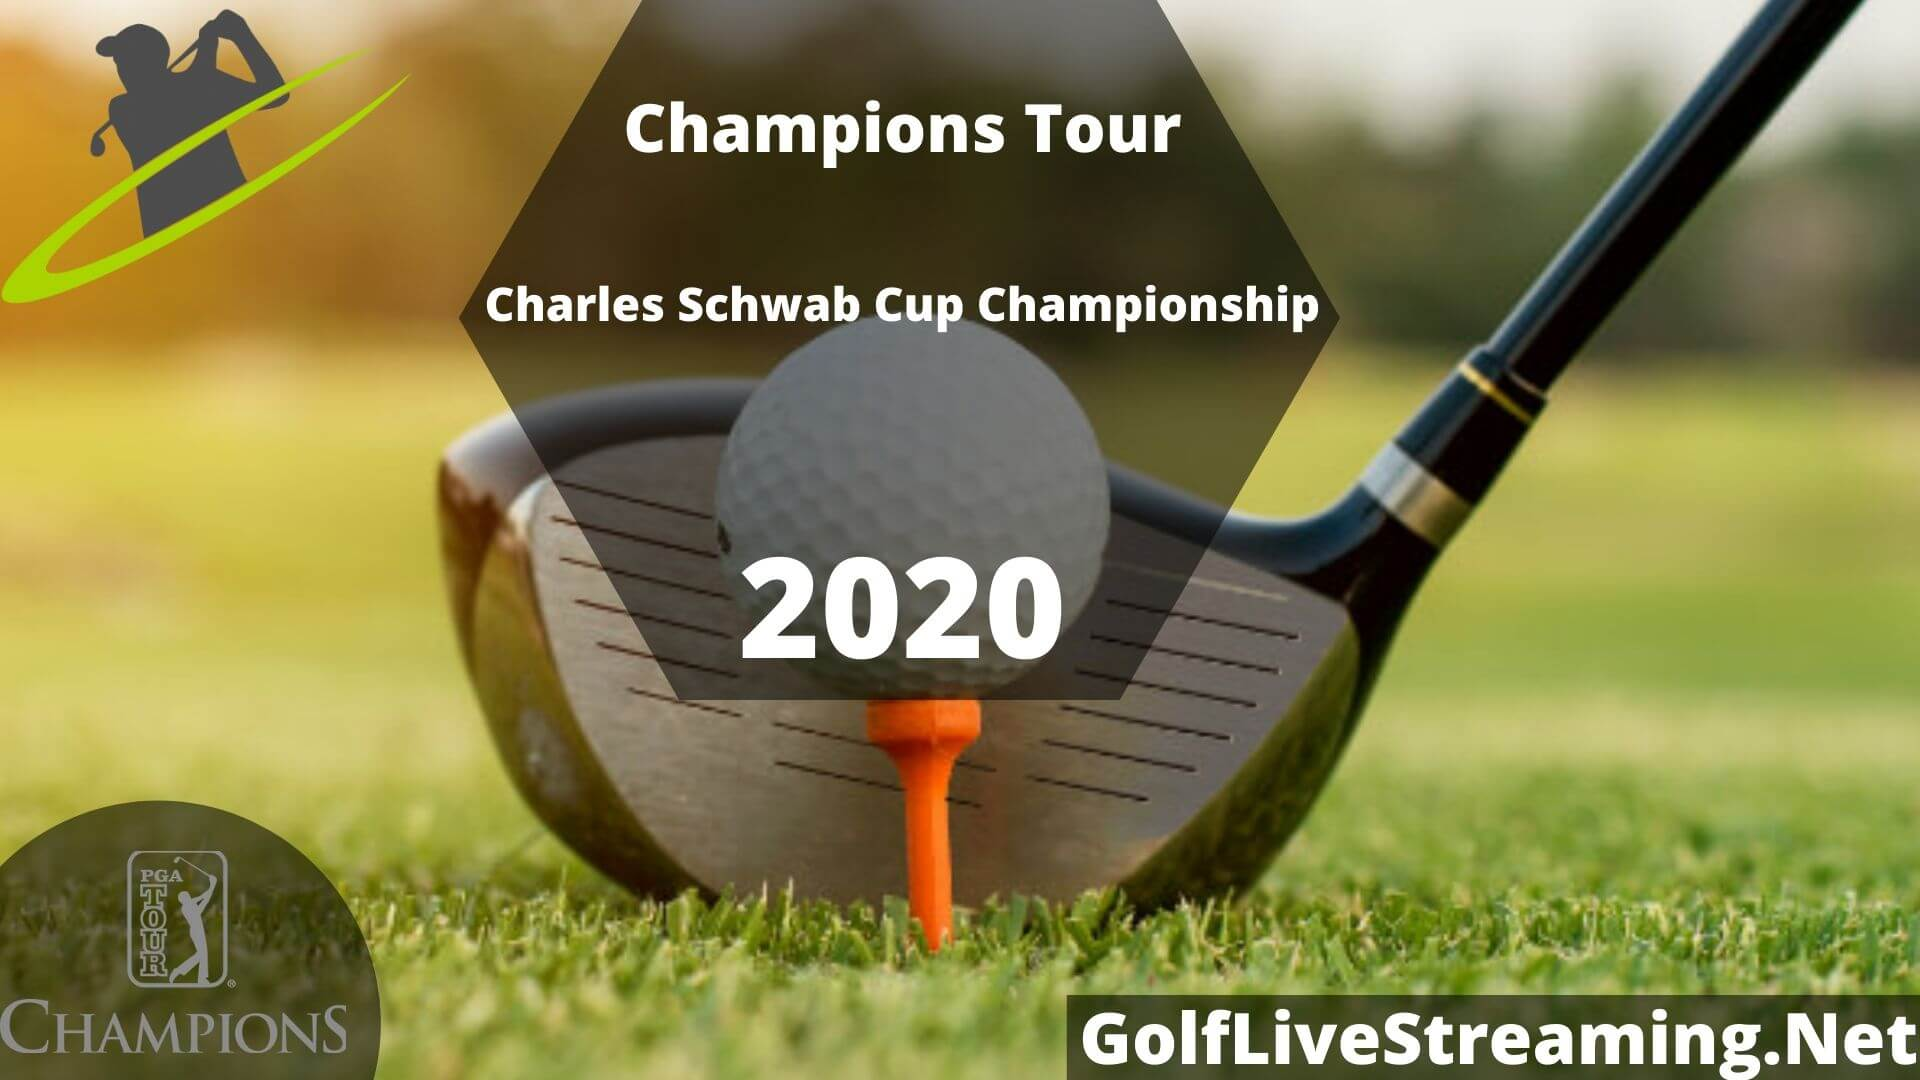 Charles Schwab Cup Championship Live Stream 2020 | Champions Tour Round 1